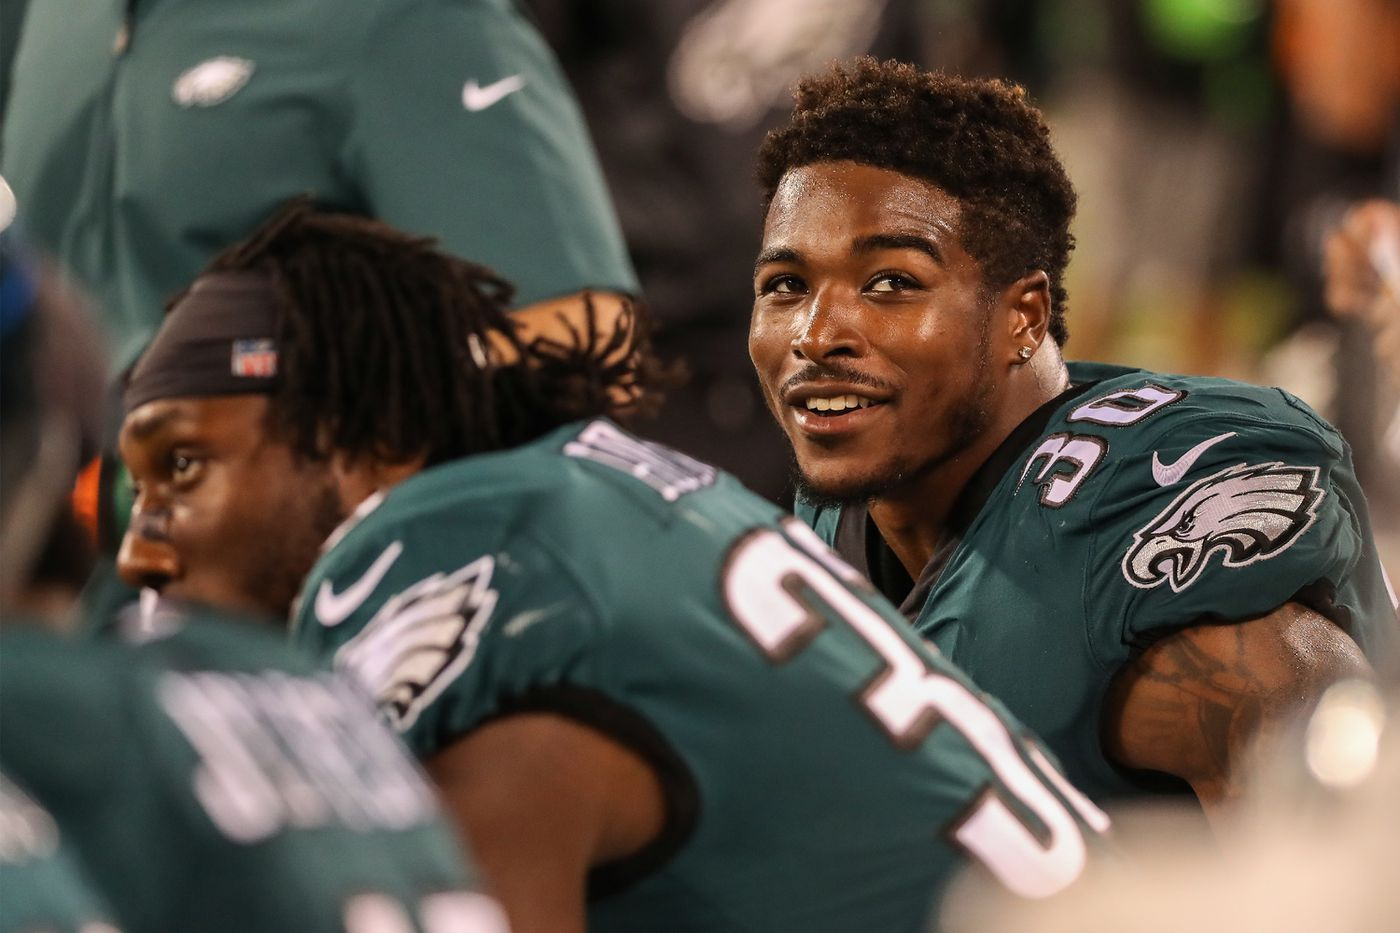 Eagles' playing time in win over Giants, safety situation, good day in NFC East | Early Birds